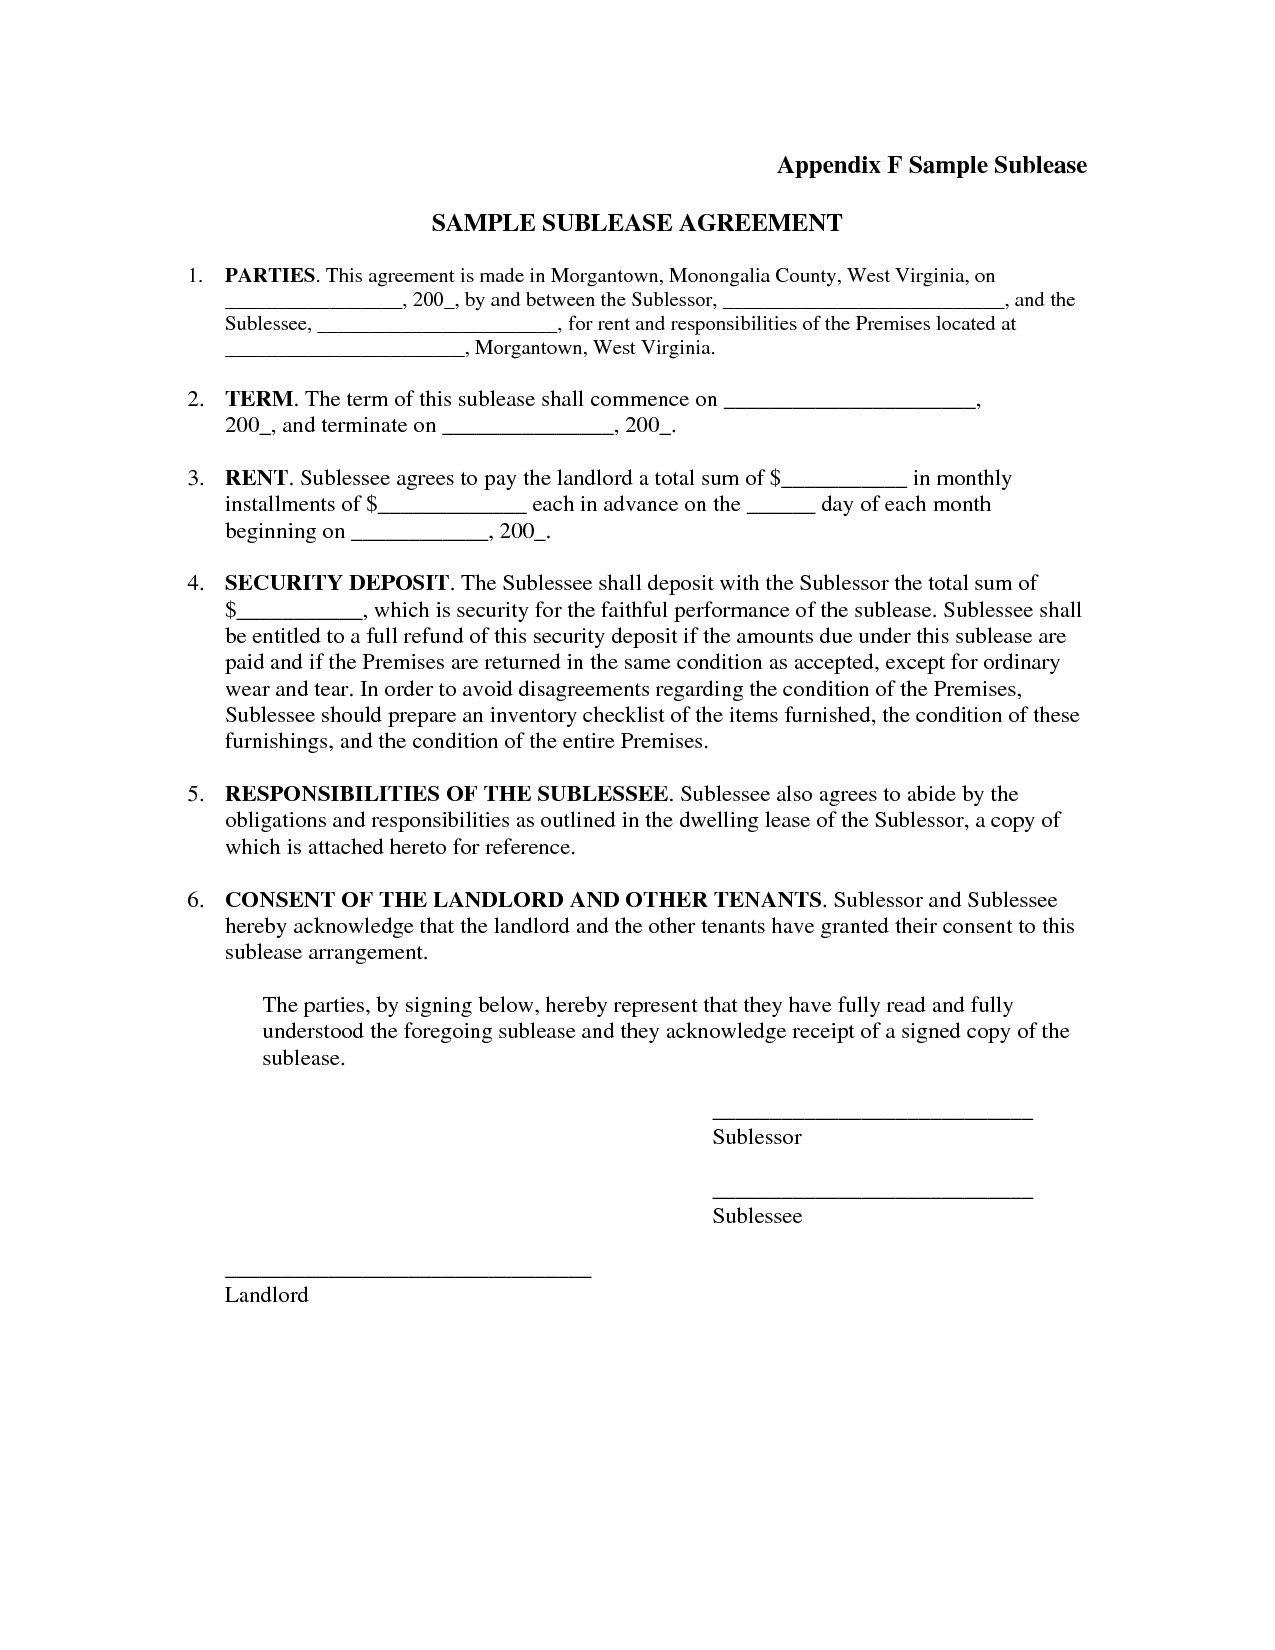 car buyer bill of rights refund form by redflagcharlotte buyers – Sublet Agreement Template